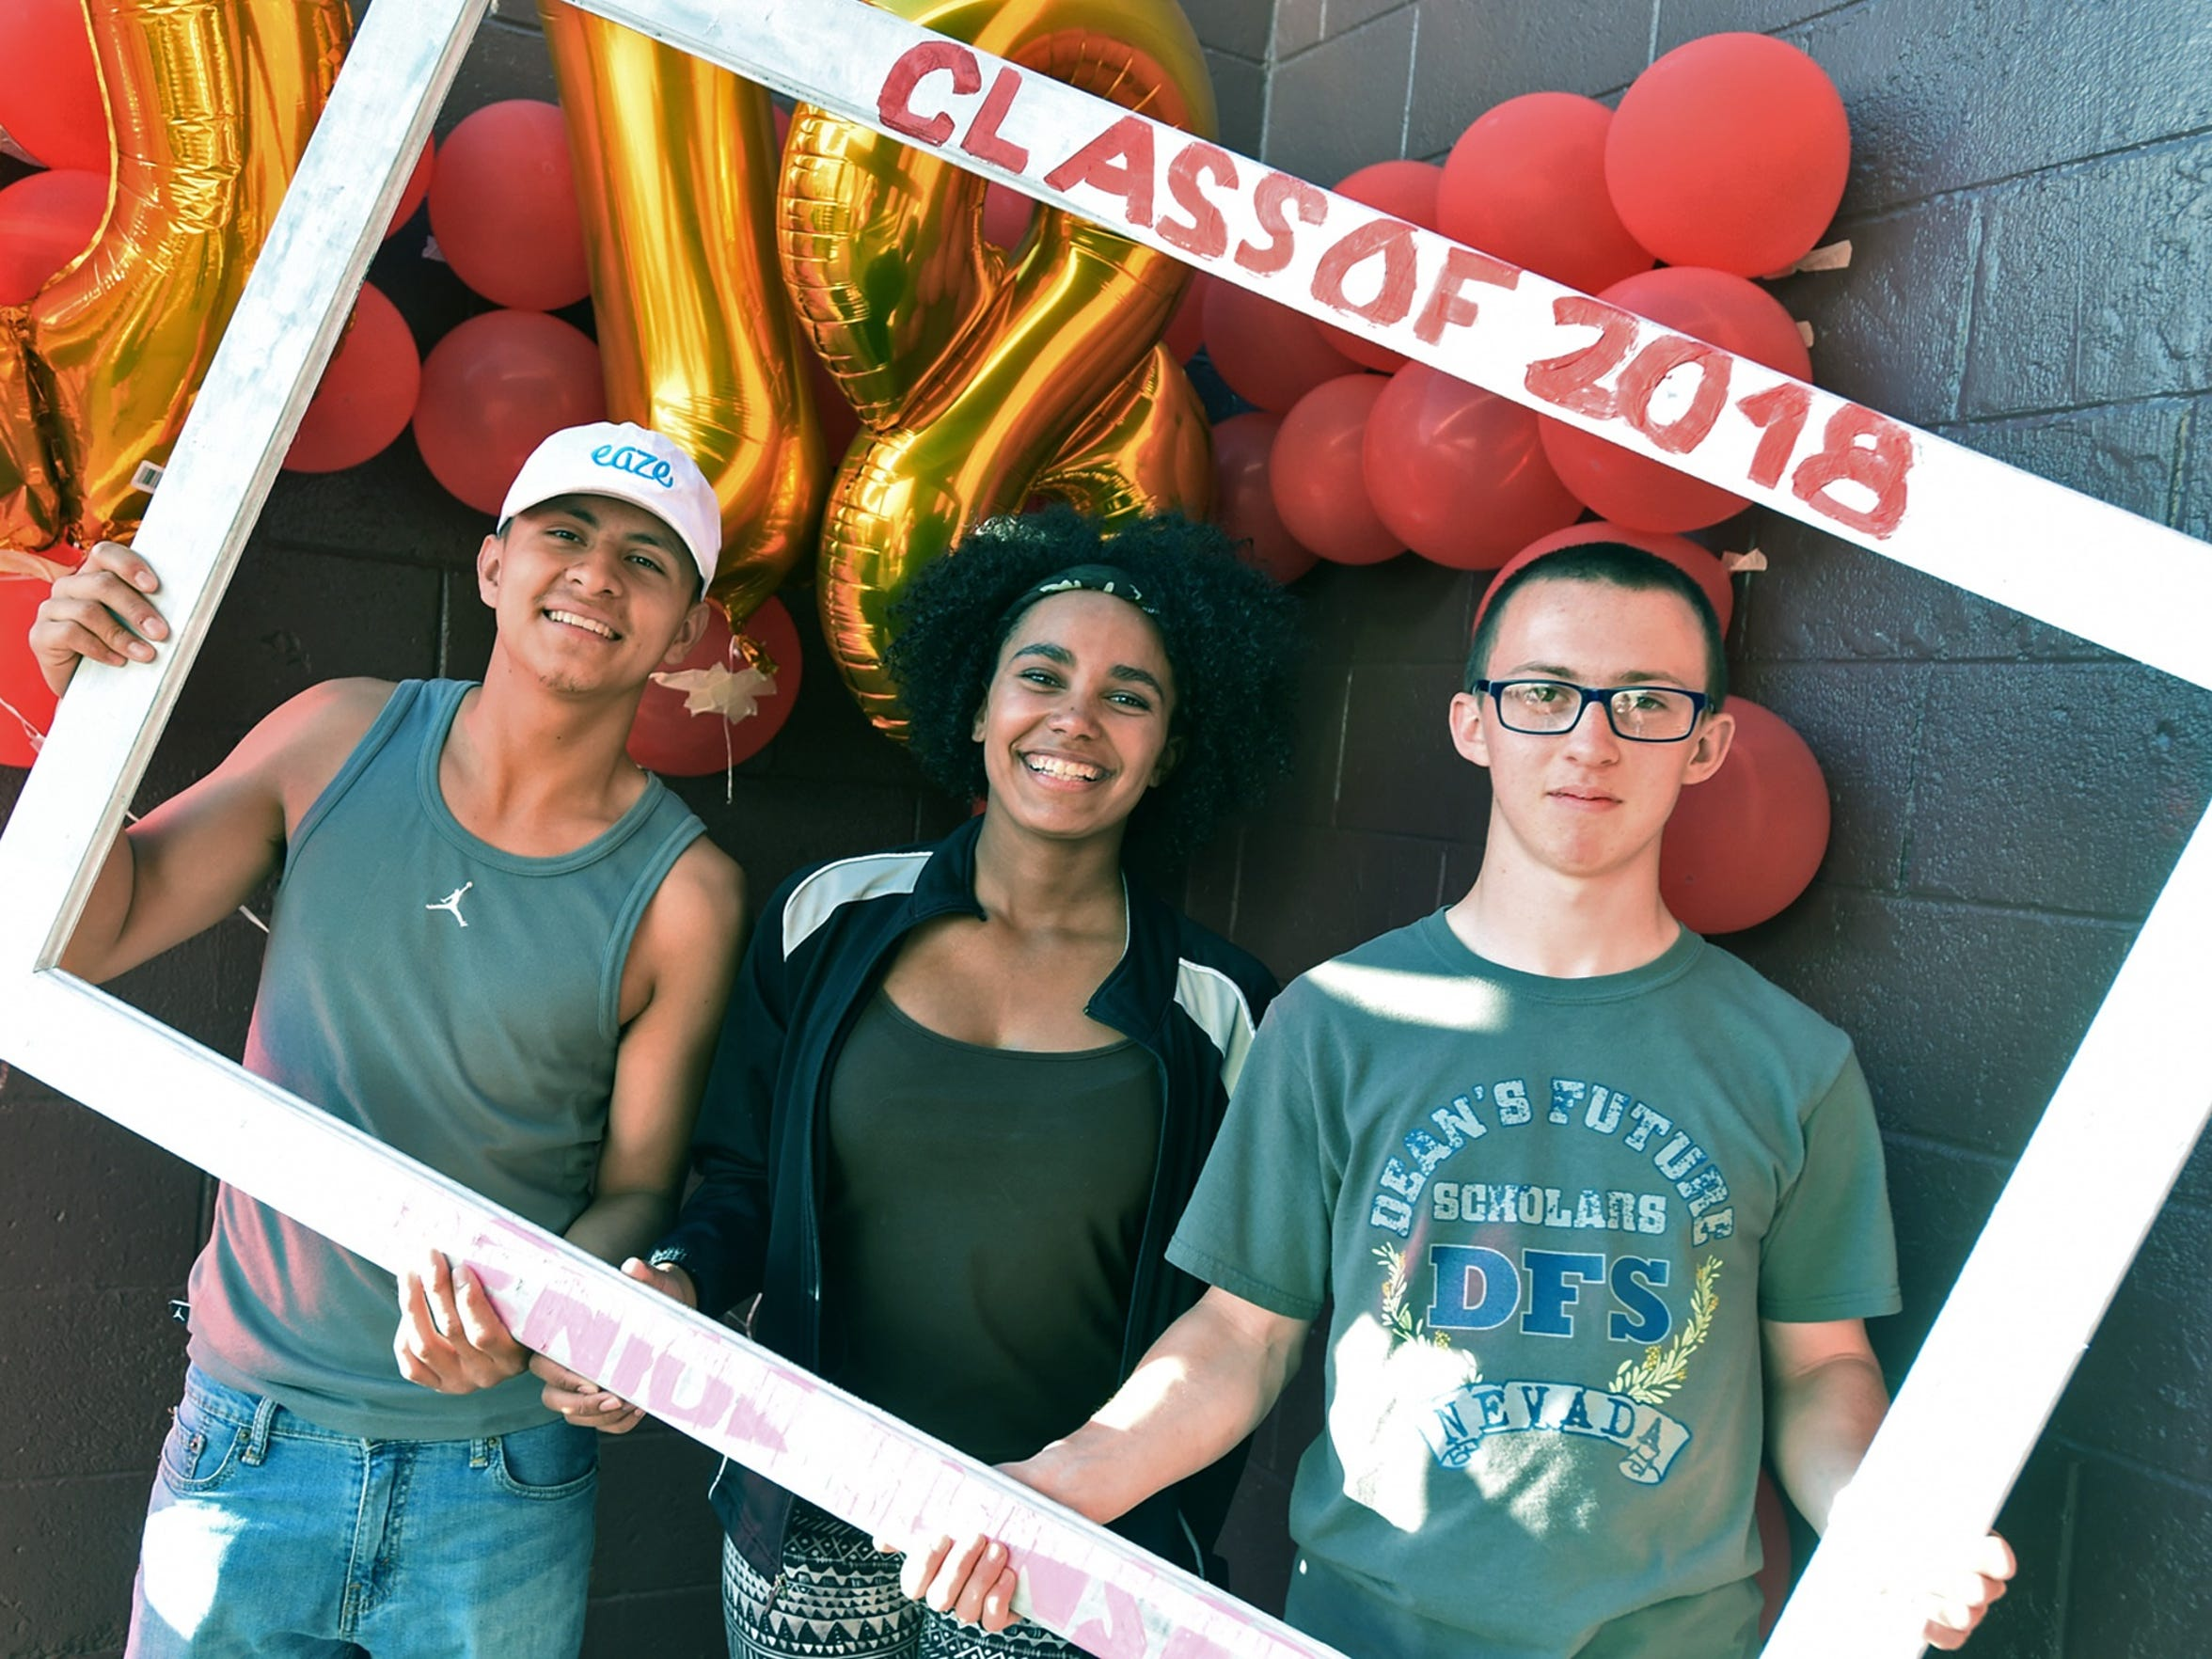 Sparks Middle School shooting survivors Justin Fuentes, left, Elizabeth Long, center, and Neil Penrod pose for a photo during Senior Sunset at Spark High School. All three will graduate from Sparks High.